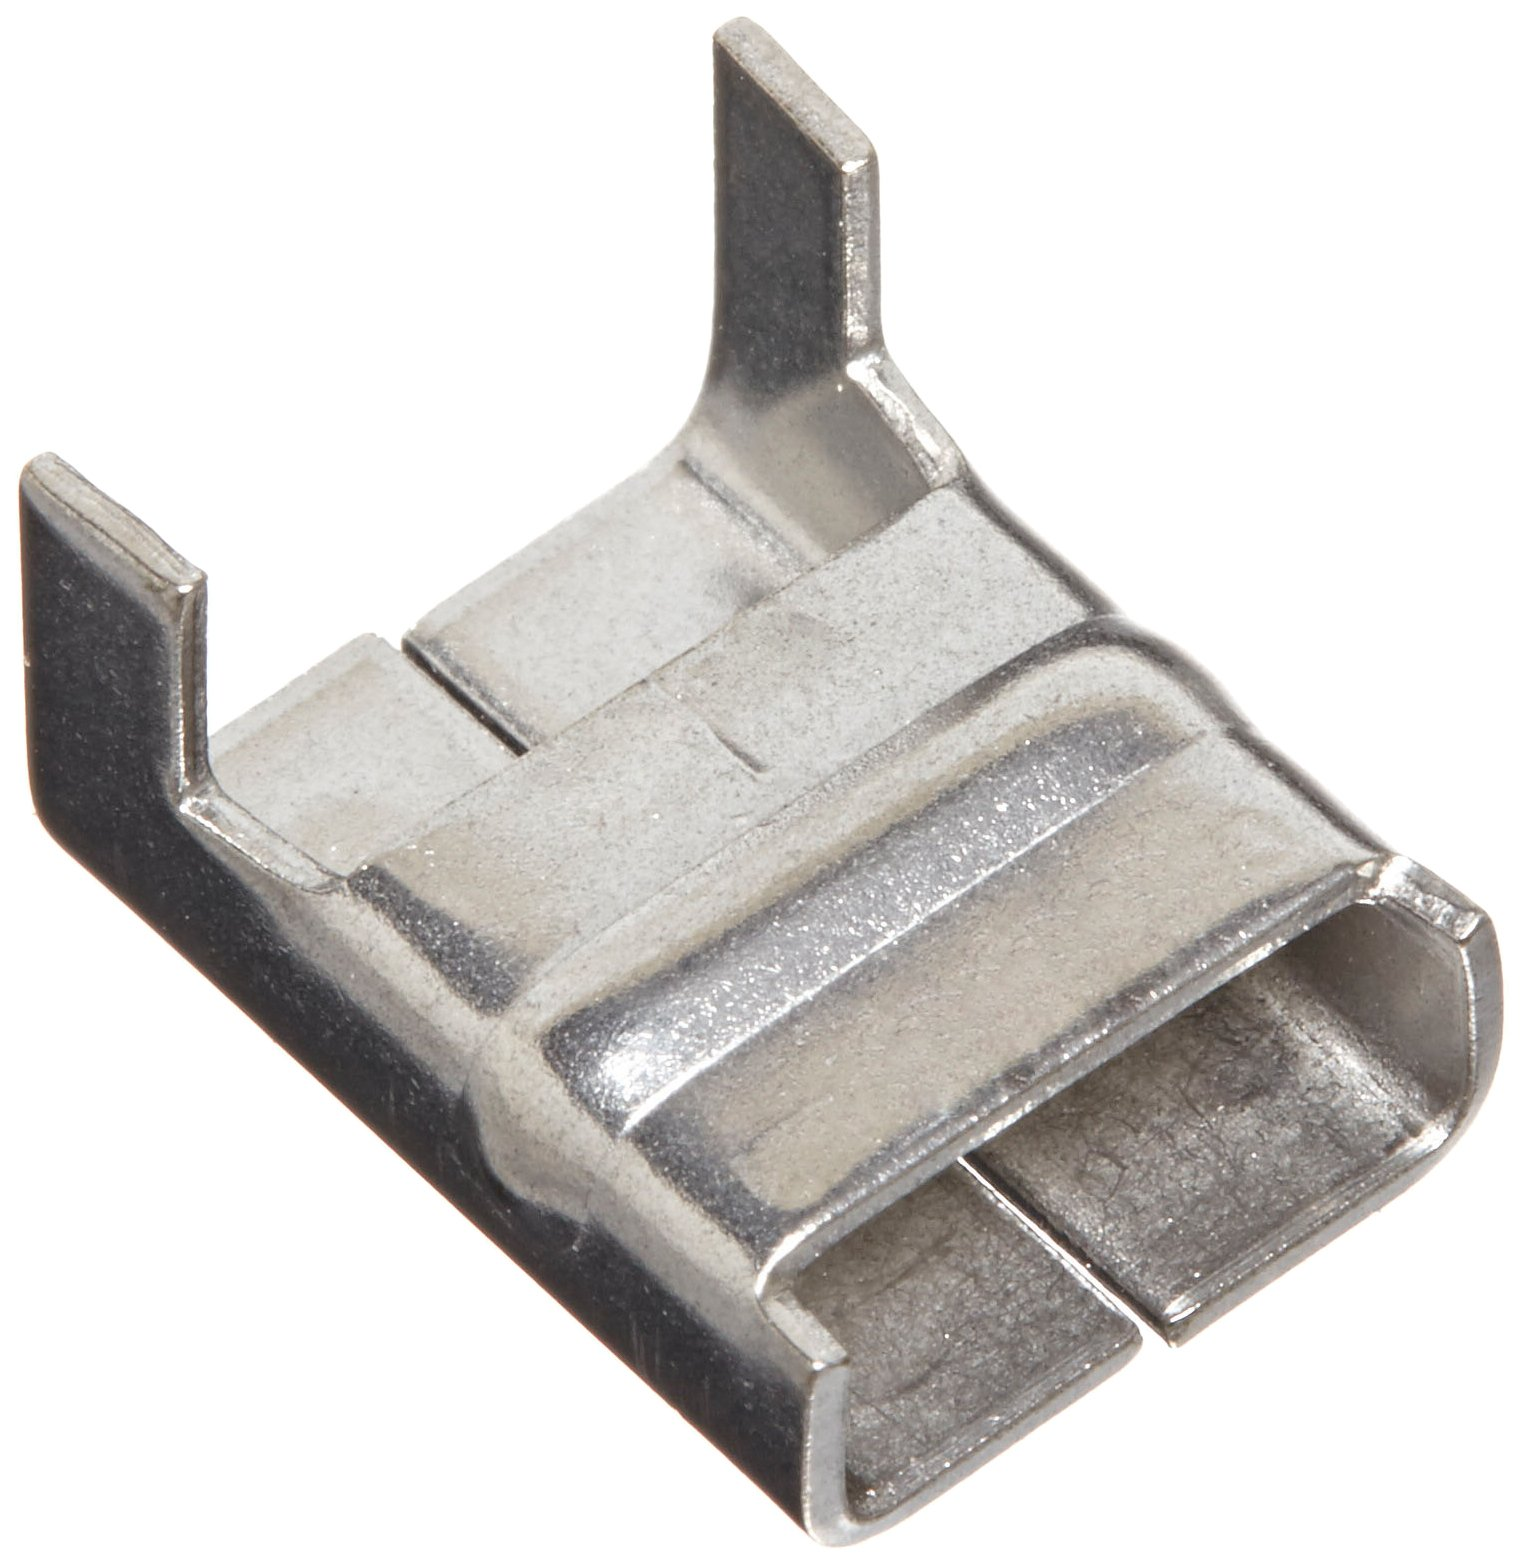 BAND-IT Clips AE4539, 316 Stainless Steel, 3/8'' wide (100 per Box)